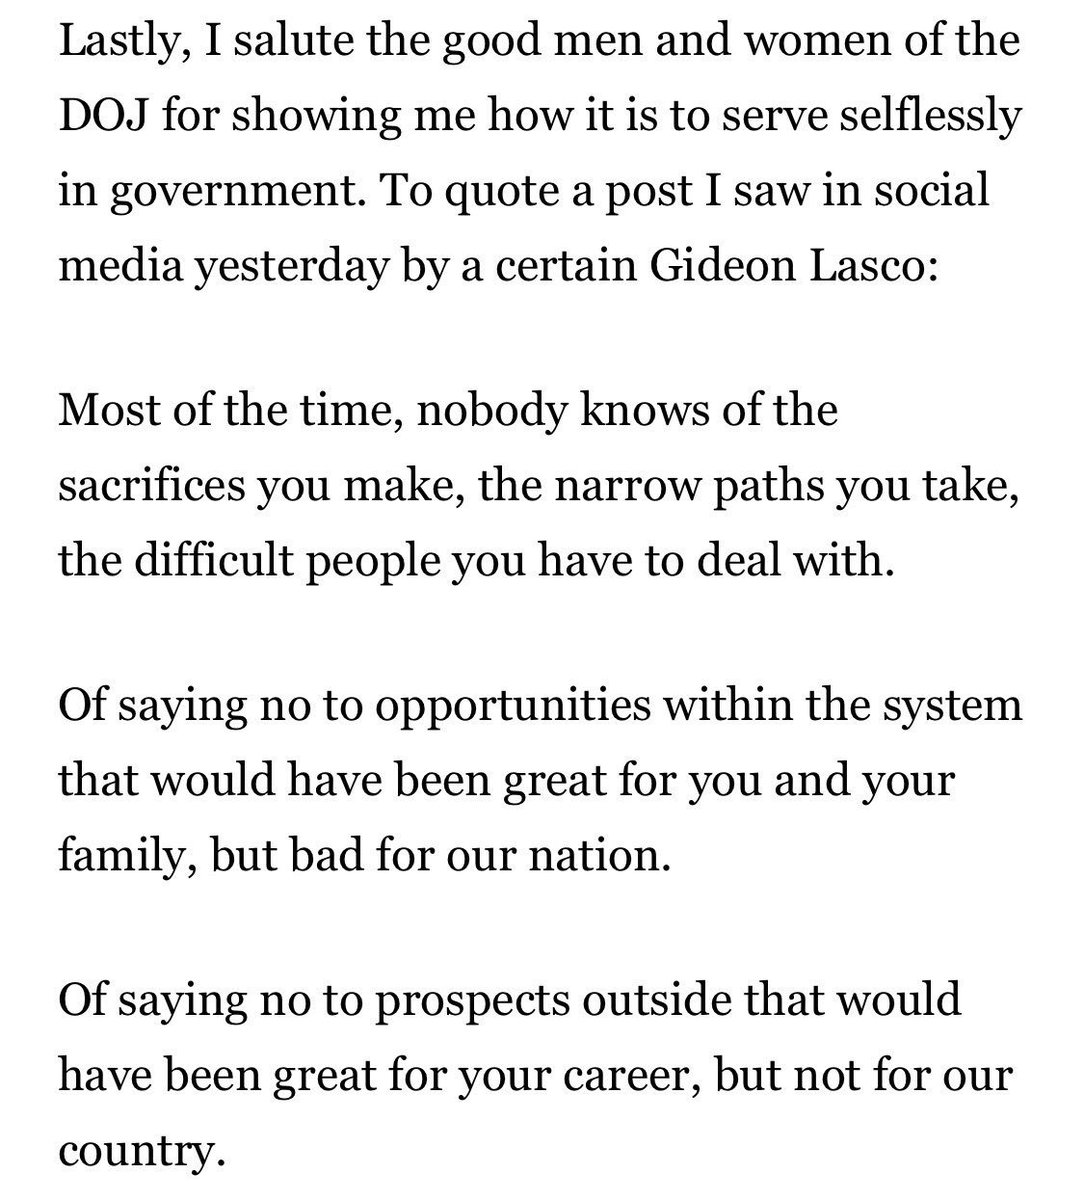 gideon lasco on twitter aguirre cites me in his farewell speech in  aguirre cites me in his farewell speech in doj but he was the last thing i  had in mind when i wrote an essay encouraging the good people in